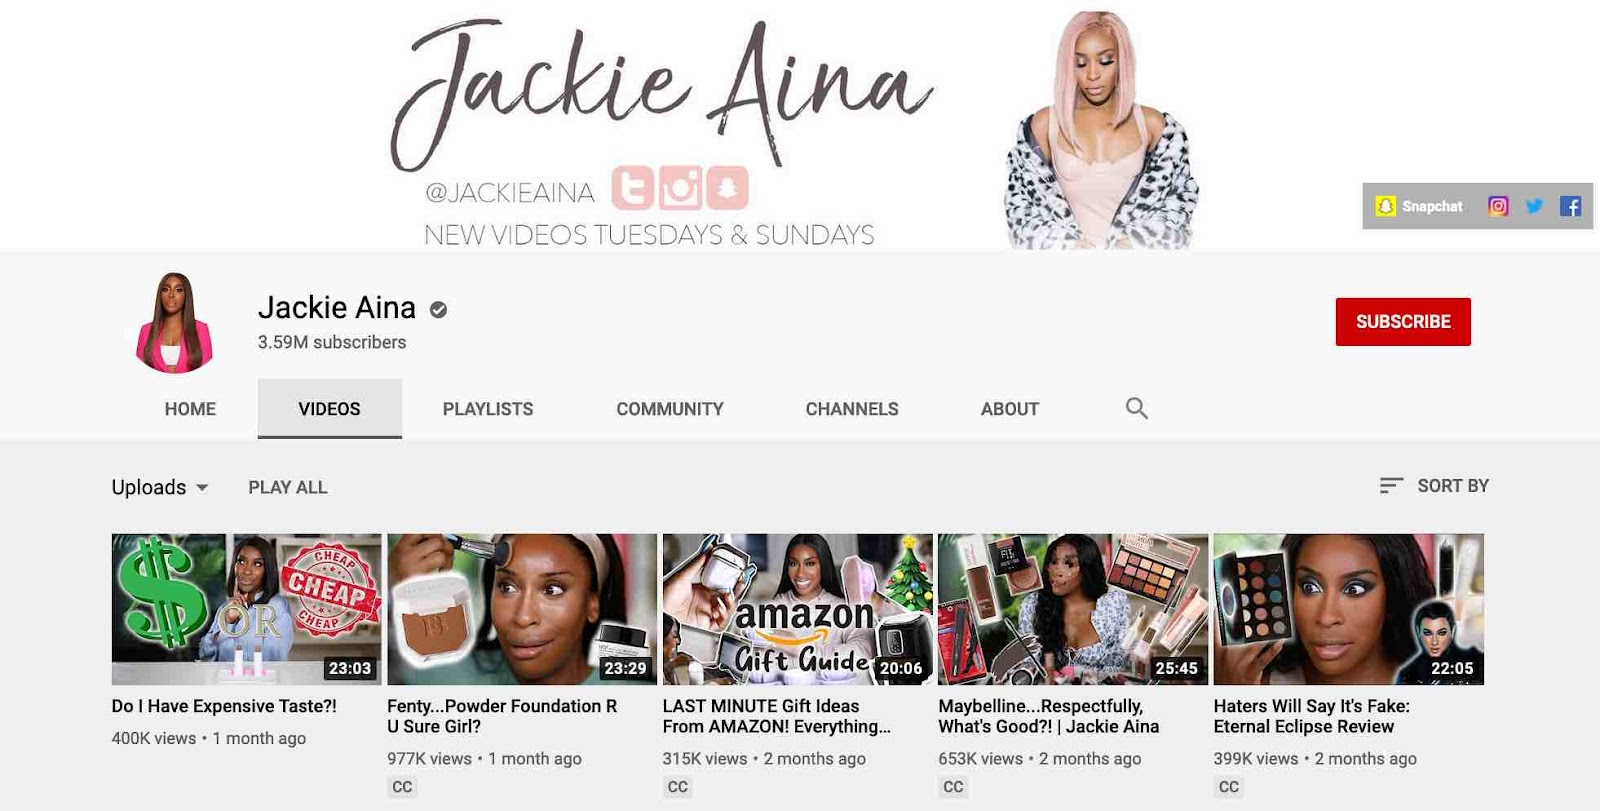 Capture of vlogger Jackie Aina's YouTube channel that focuses on beauty